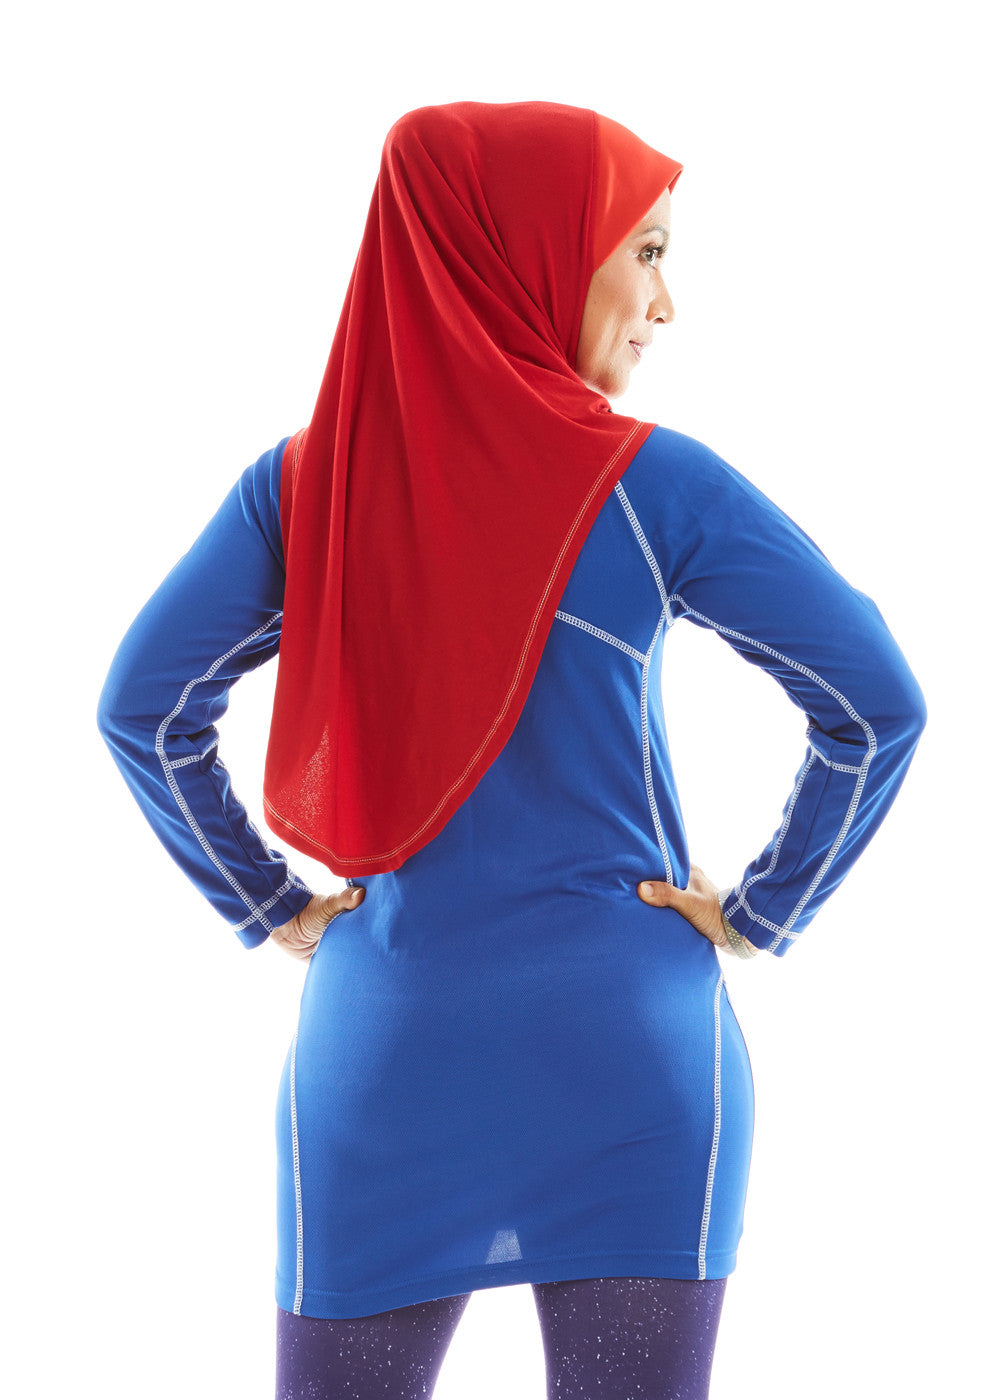 SLEEK Fit Ultramarine Top